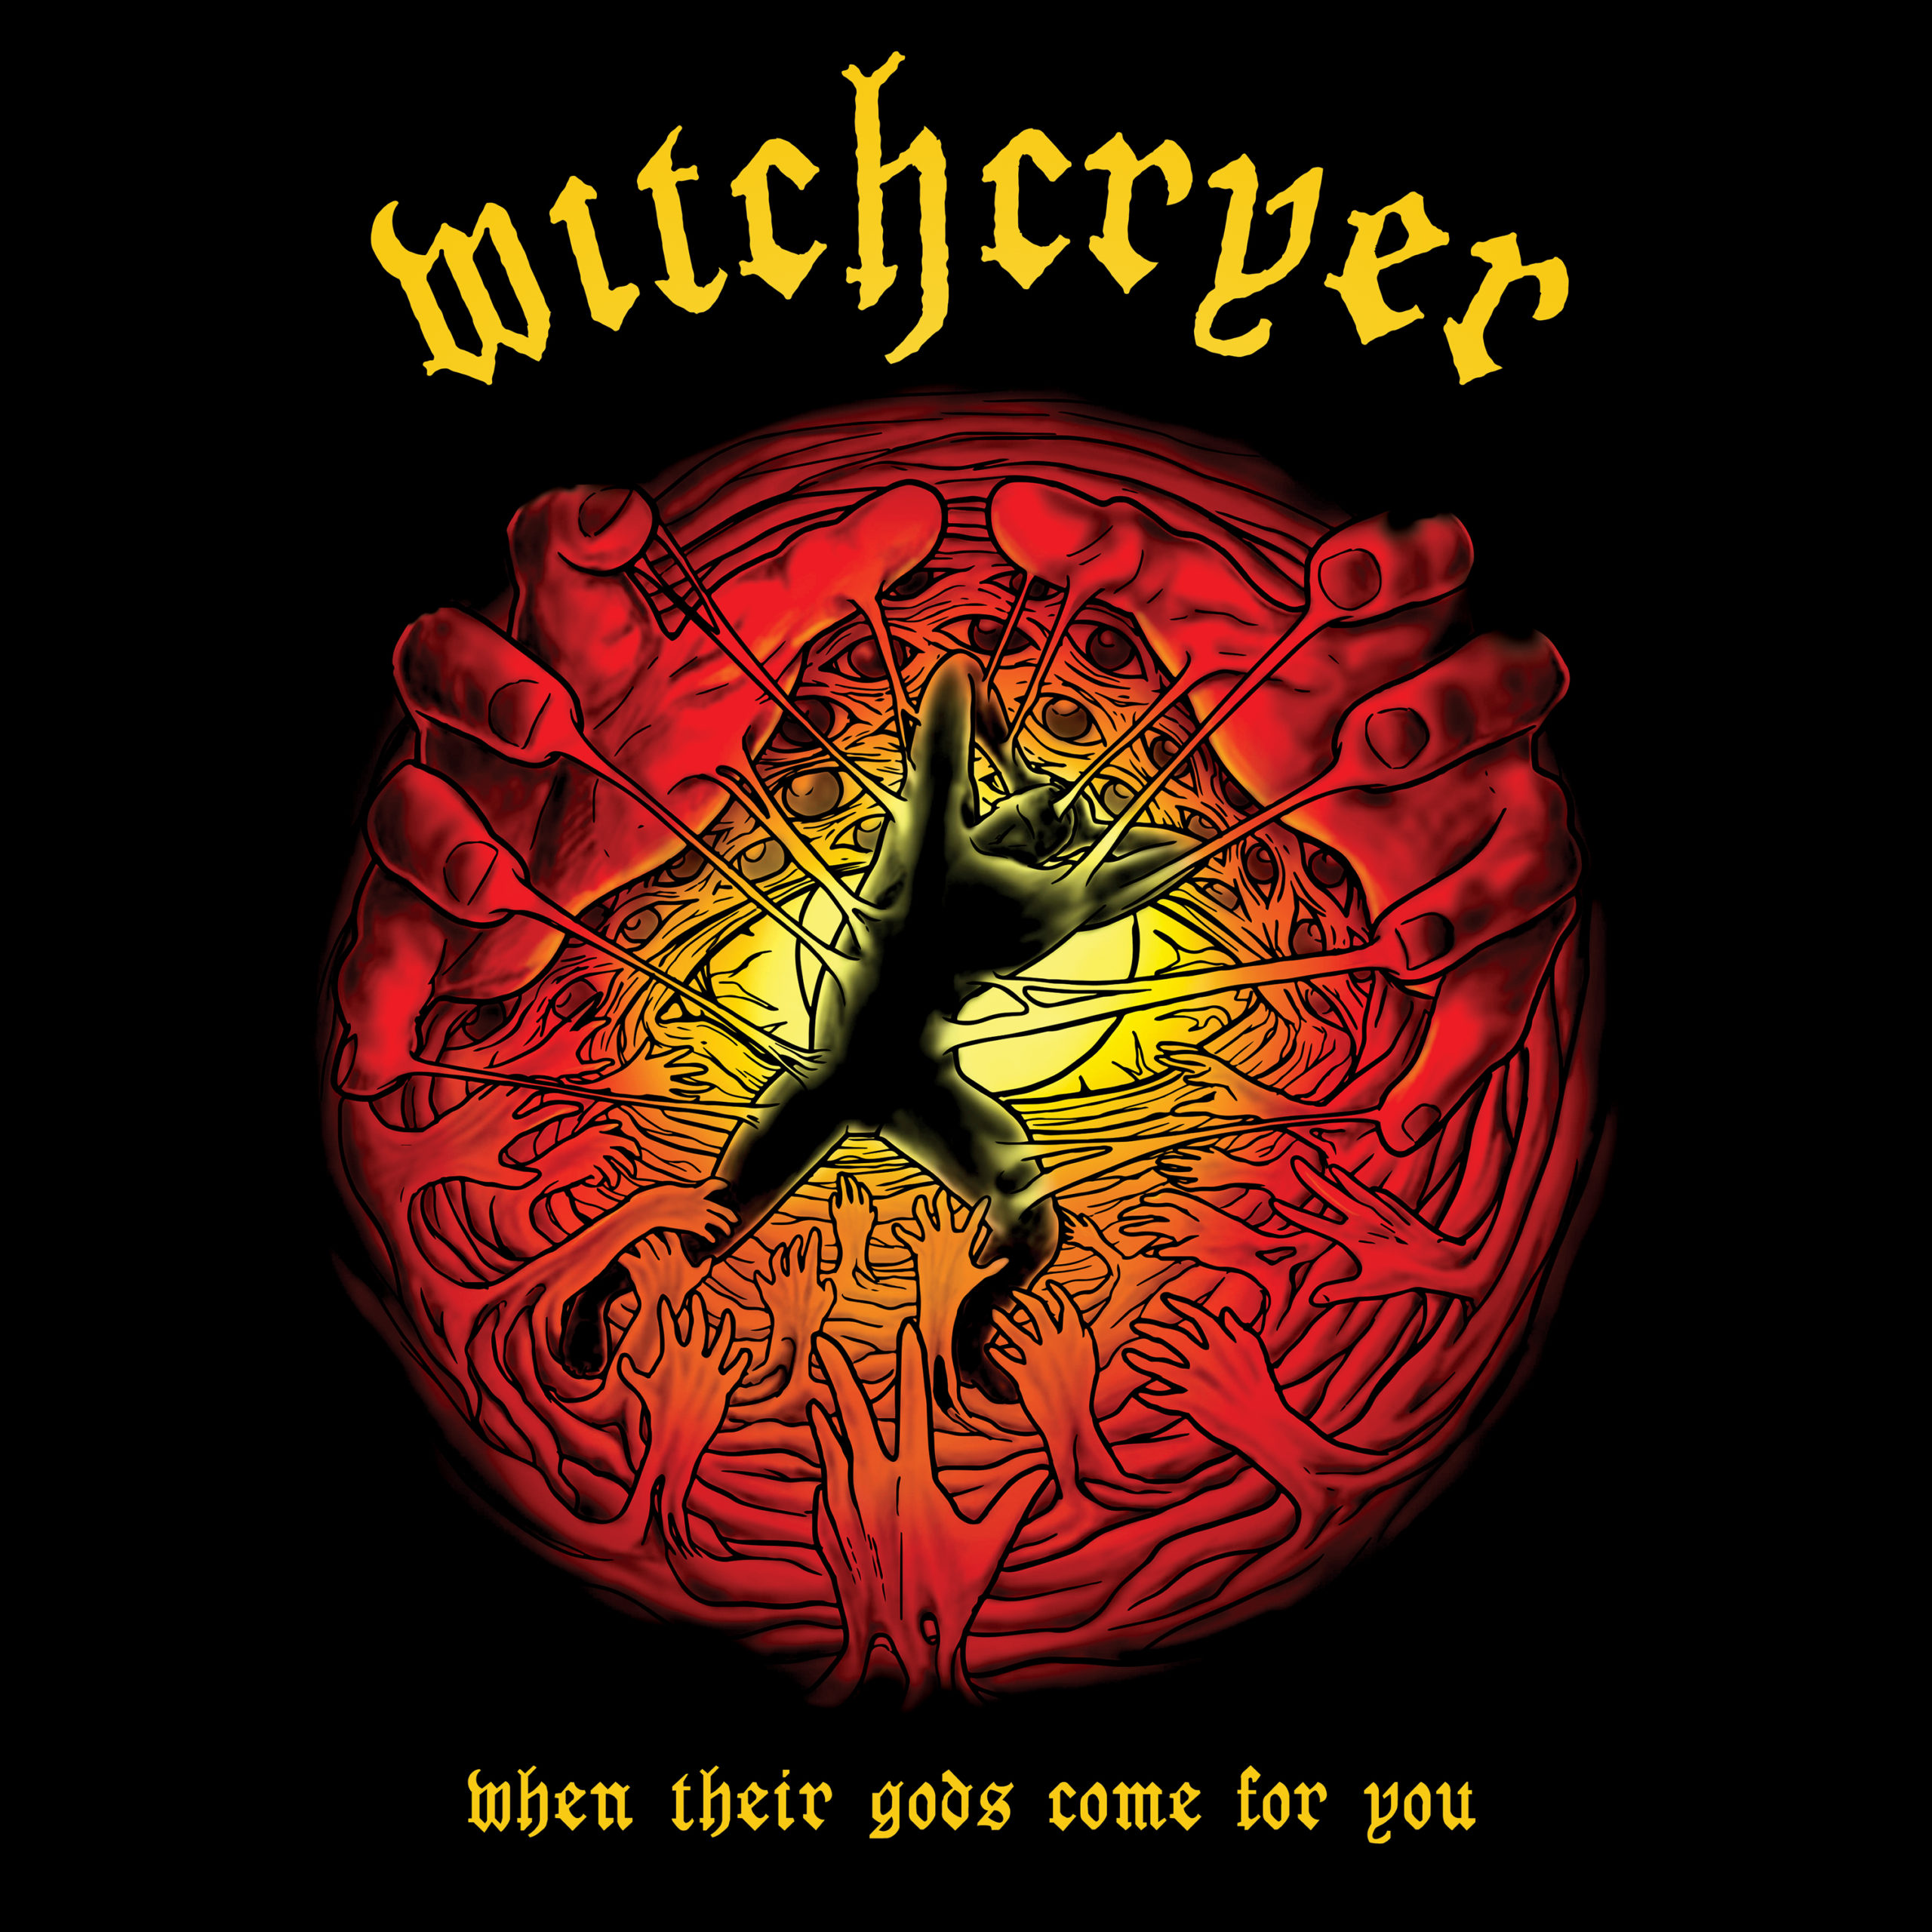 Witchcryer When Their Gods Come for You